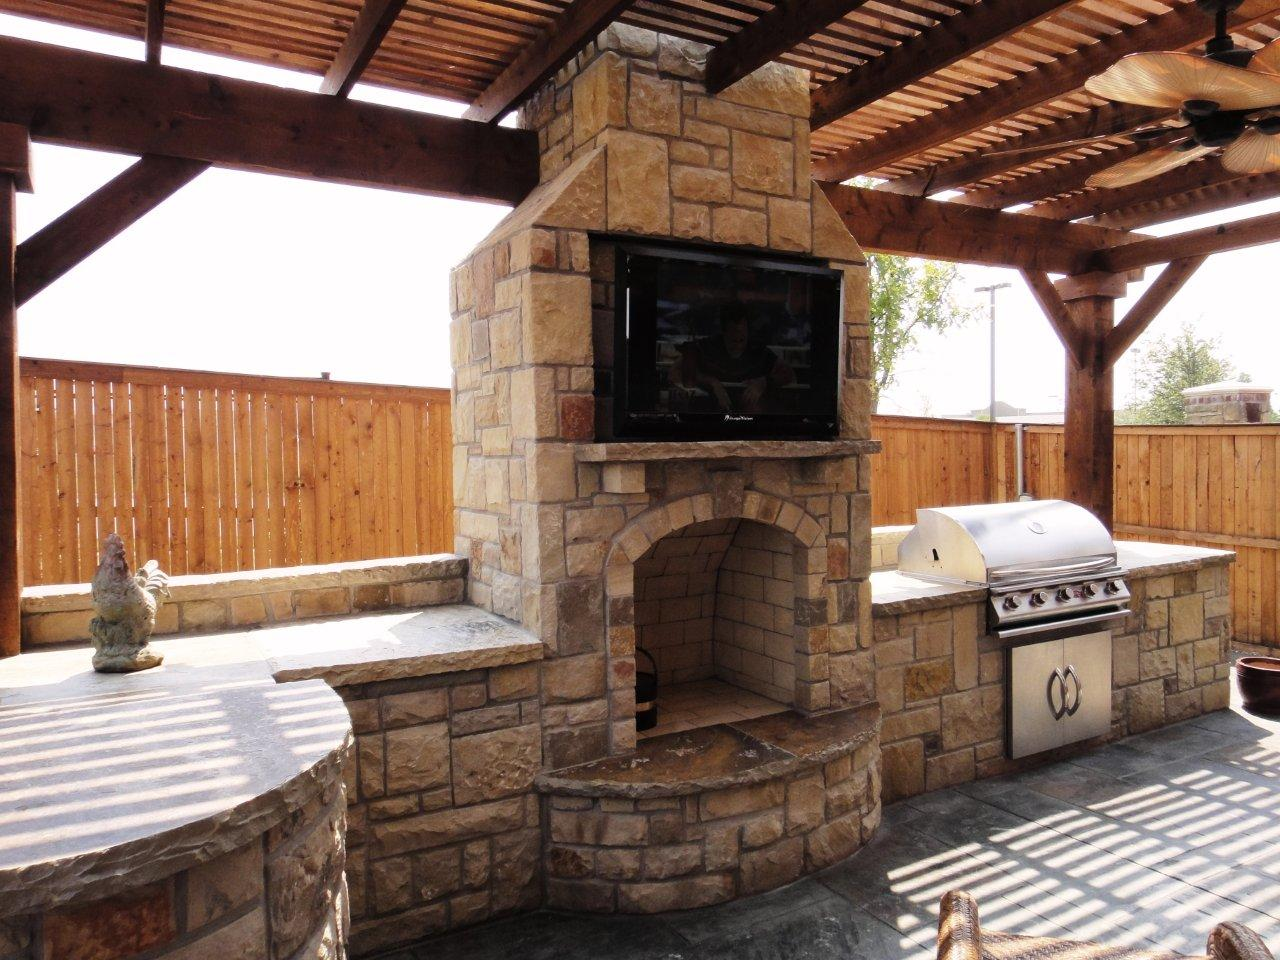 outdoor kitchen fireplace photo - 1